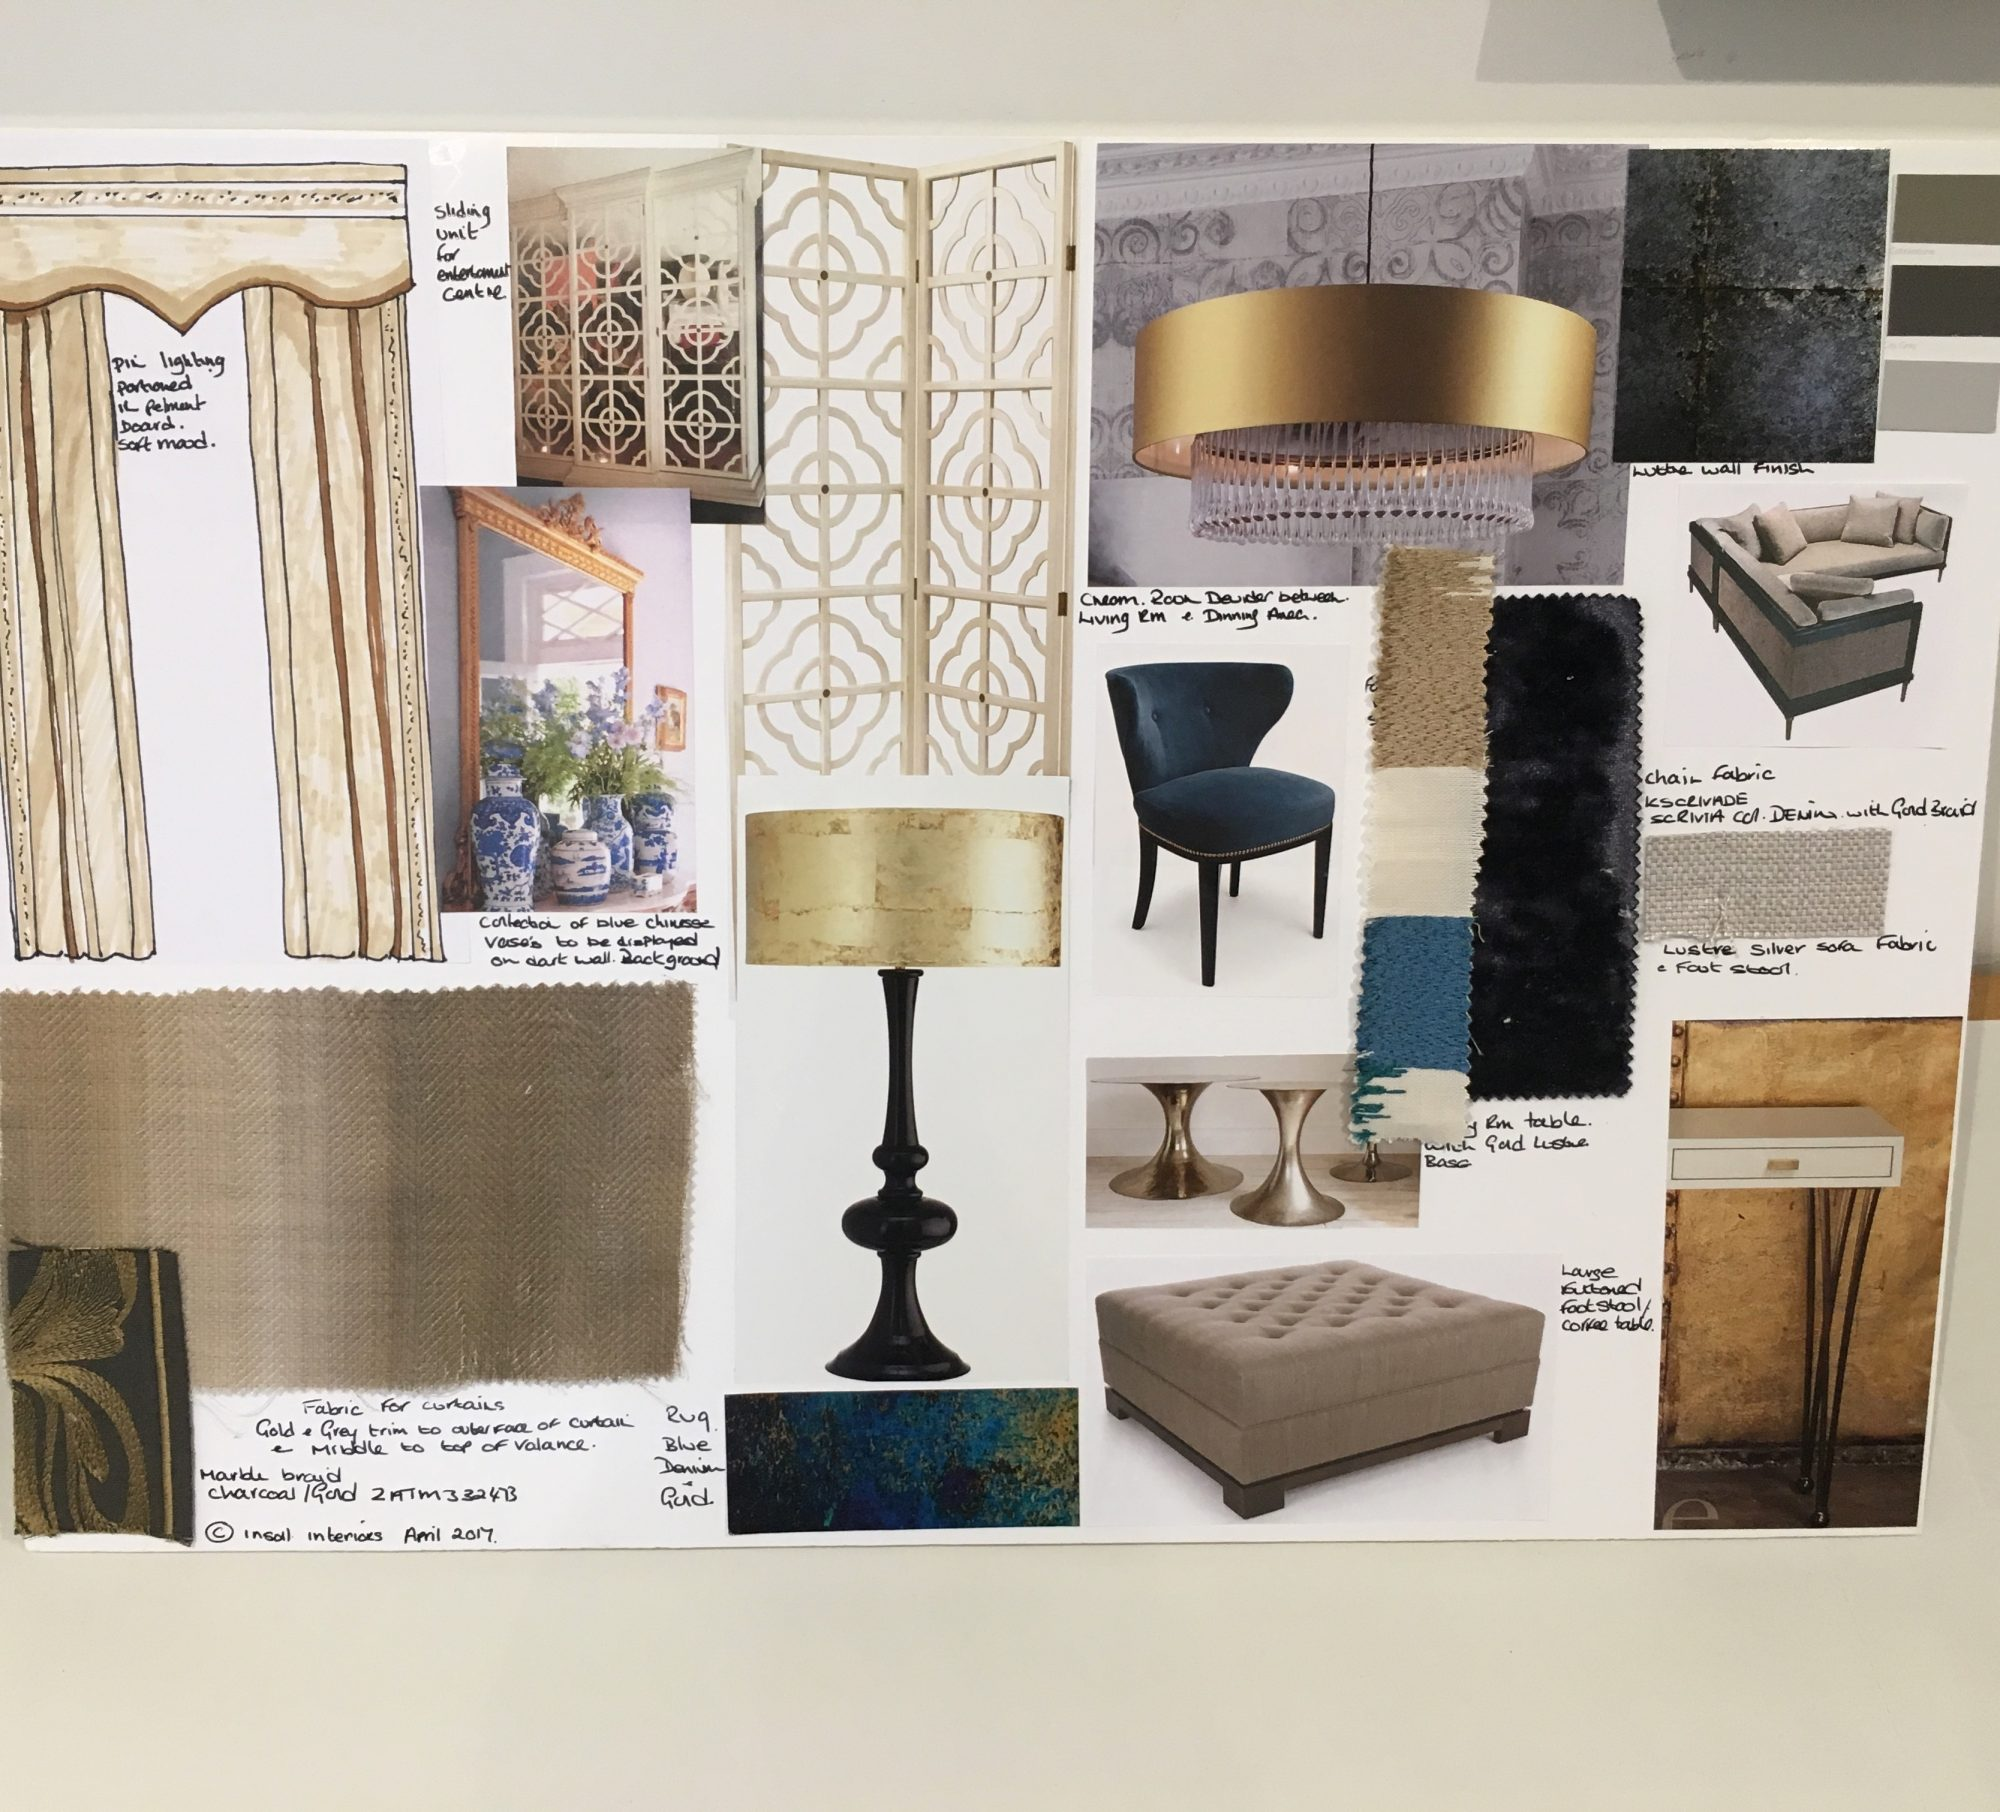 Introduction to interior design victoria hammond interiors for Interior decoration designs course